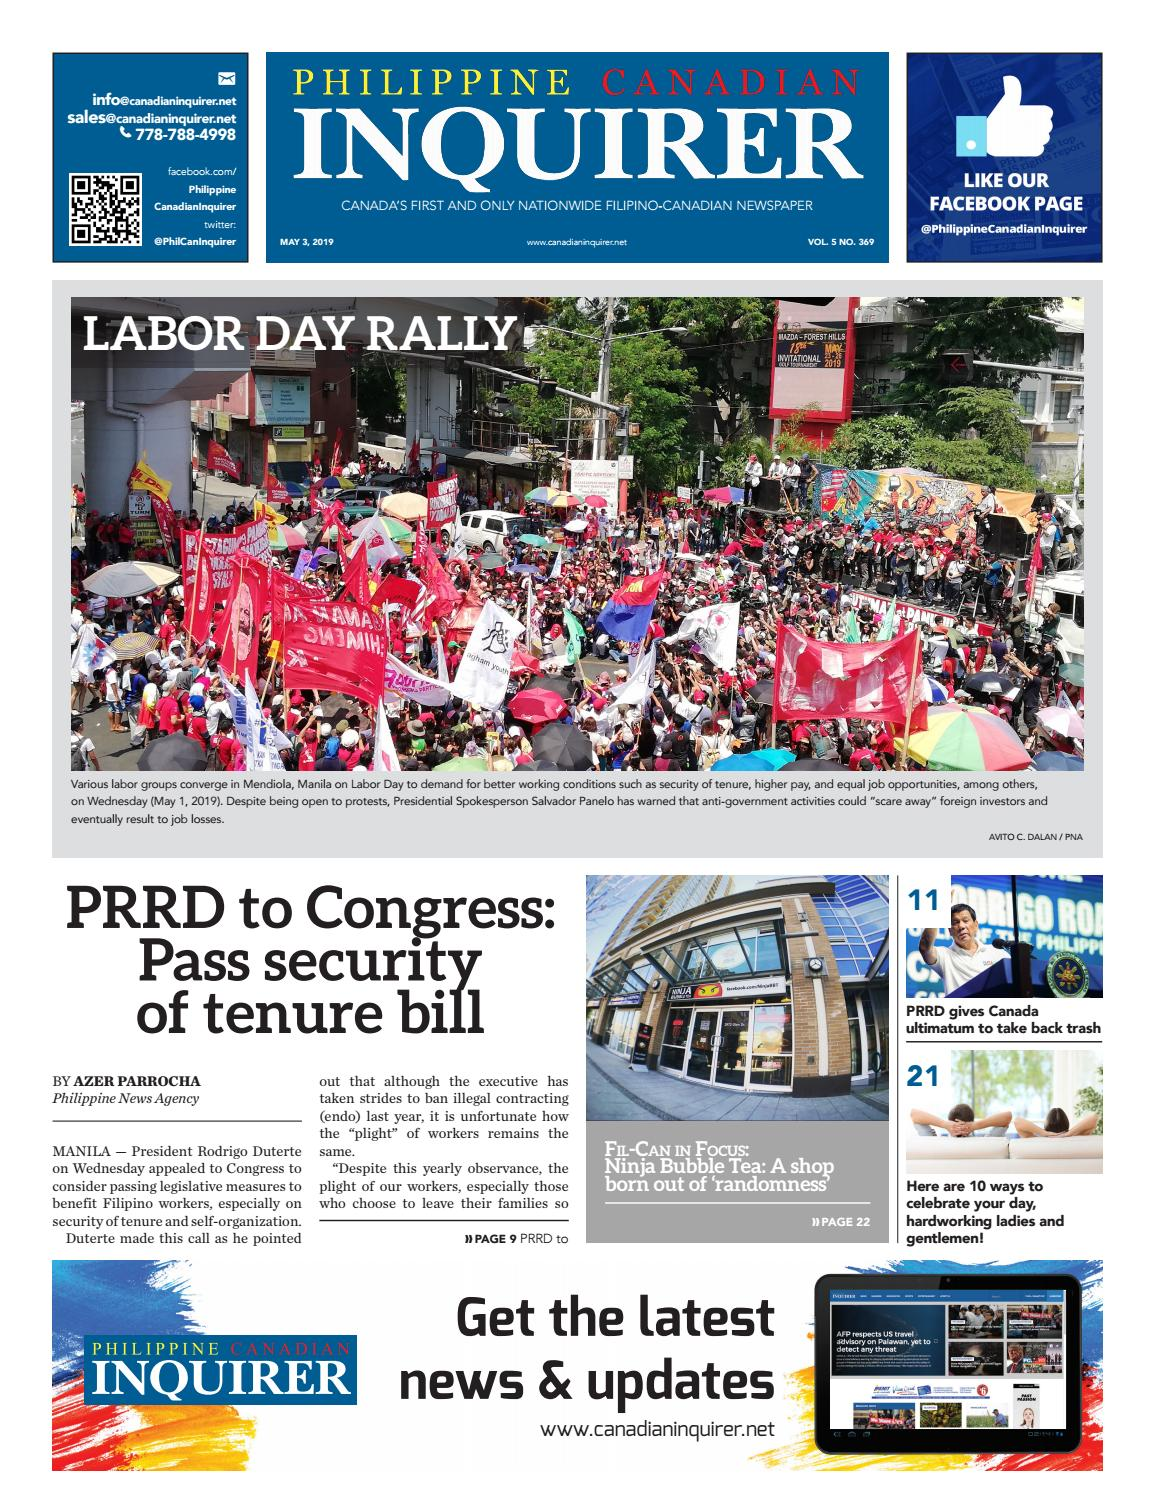 Philippine Canadian Inquirer #369 by Philippine Canadian Inquirer